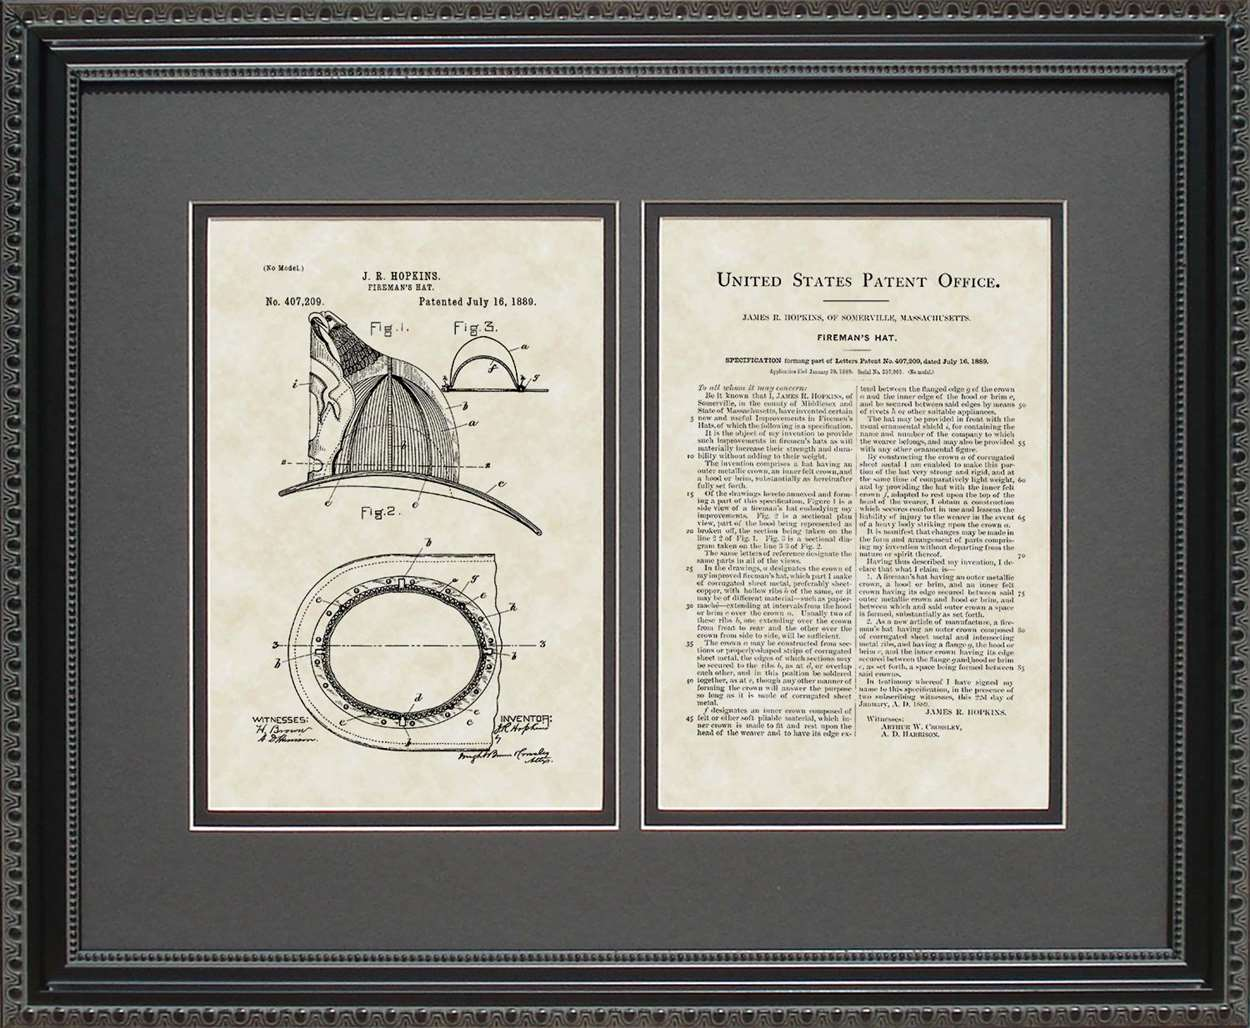 Fireman's Helmet Patent, Art & Copy, Hopkins, 1889, 16x20